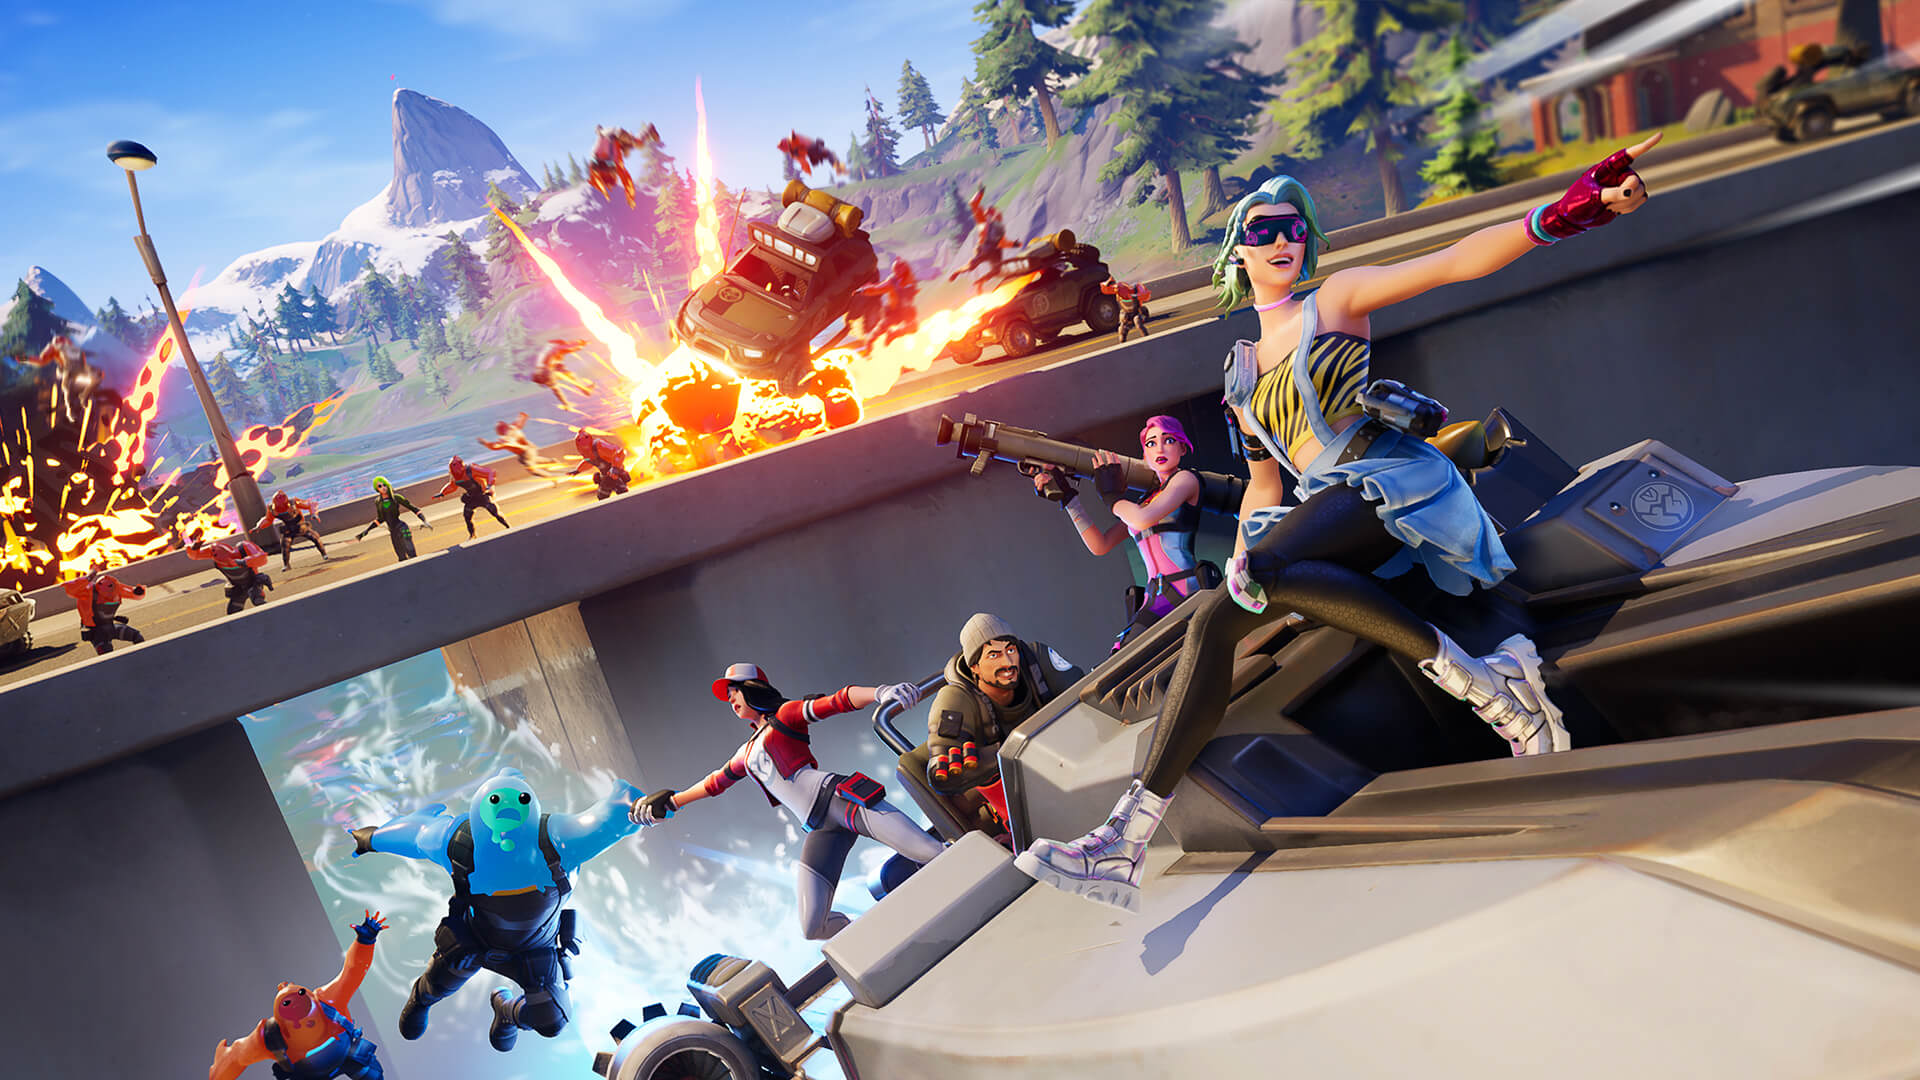 Fortnite Epic Games Xbox Series X